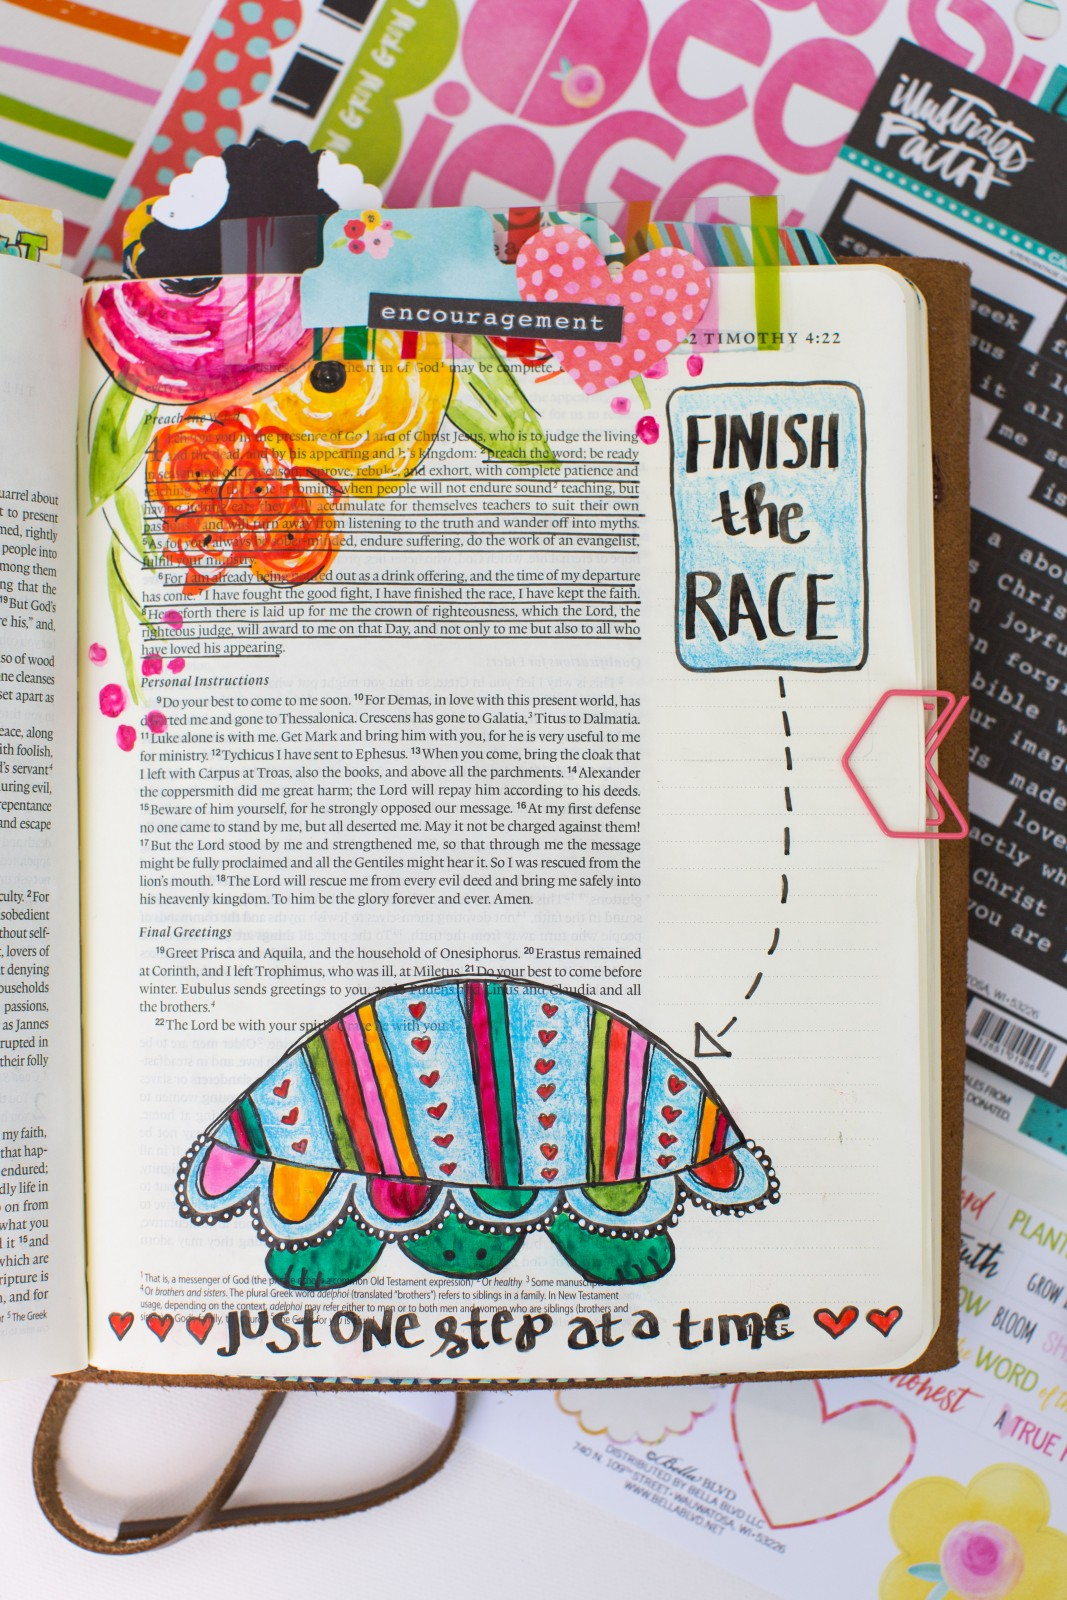 step by step drawing and watercolor process and tutorial for creating this tutorial and drawing inspiration from the She Blooms collection | Finish The Race - 2 Timothy 4:6 by Amy Bruce